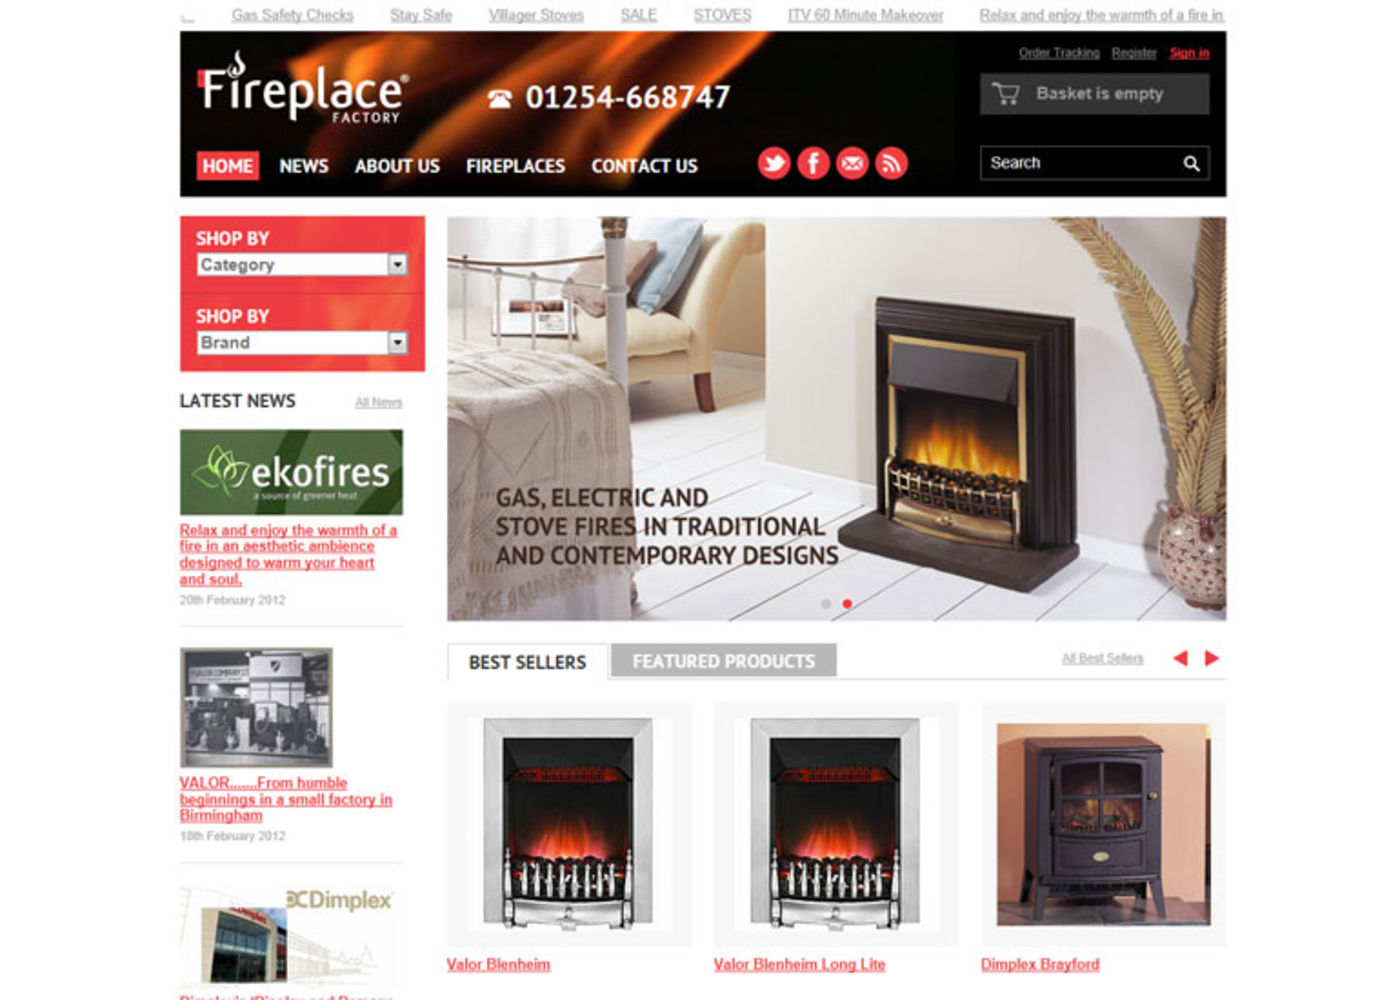 The Fireplace Factory Home page